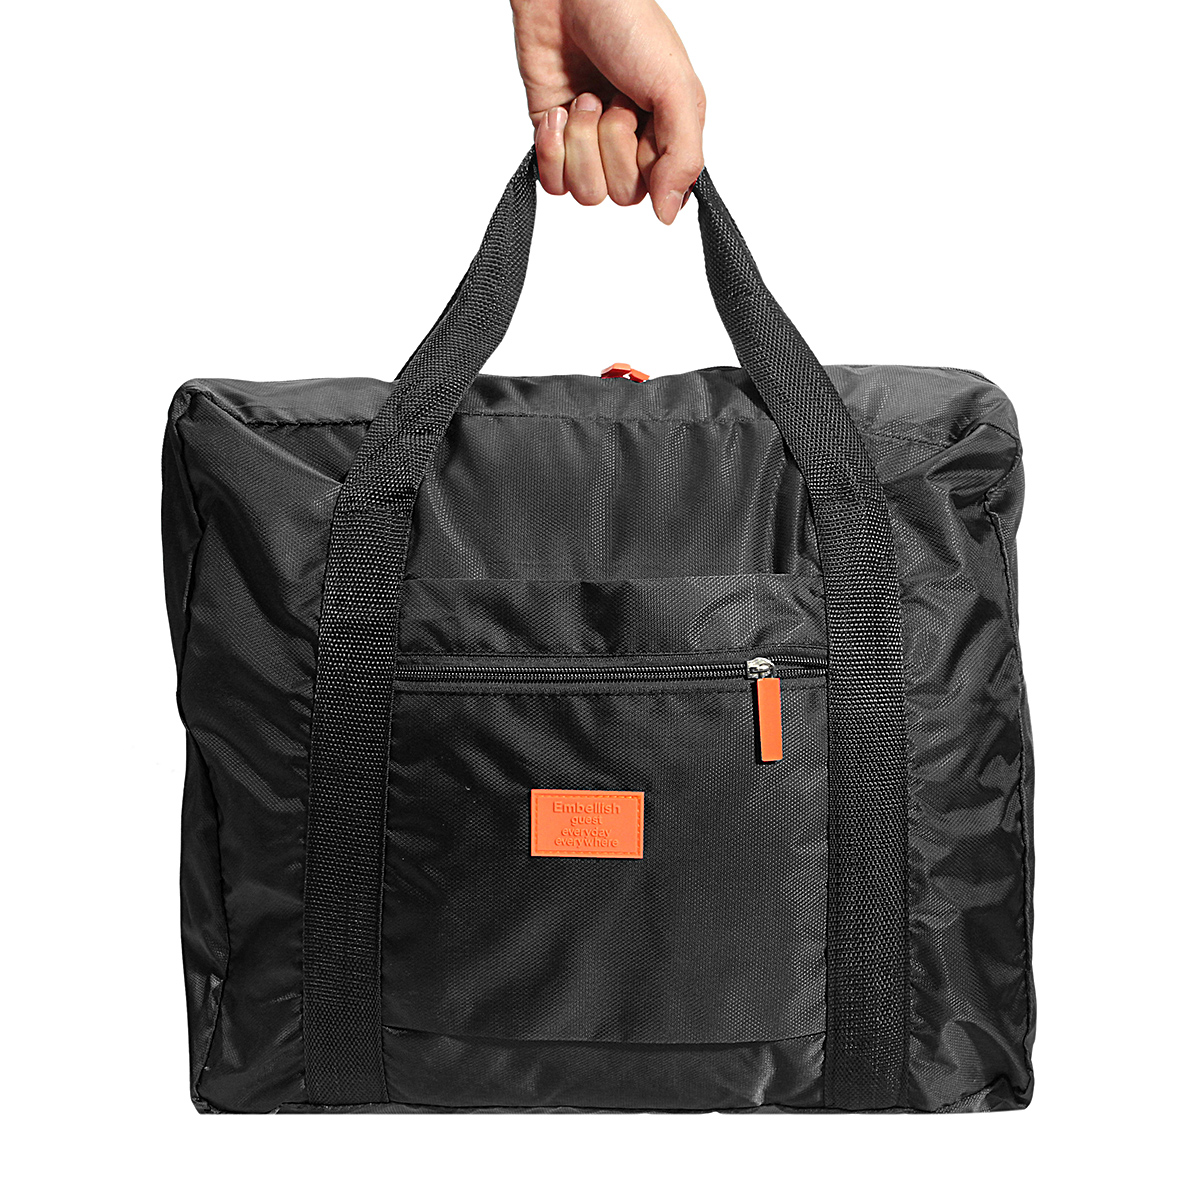 32L Outdoor Travel Foldable Luggage Bag Clothes Storage Organizer Carry-On Duffle Pack